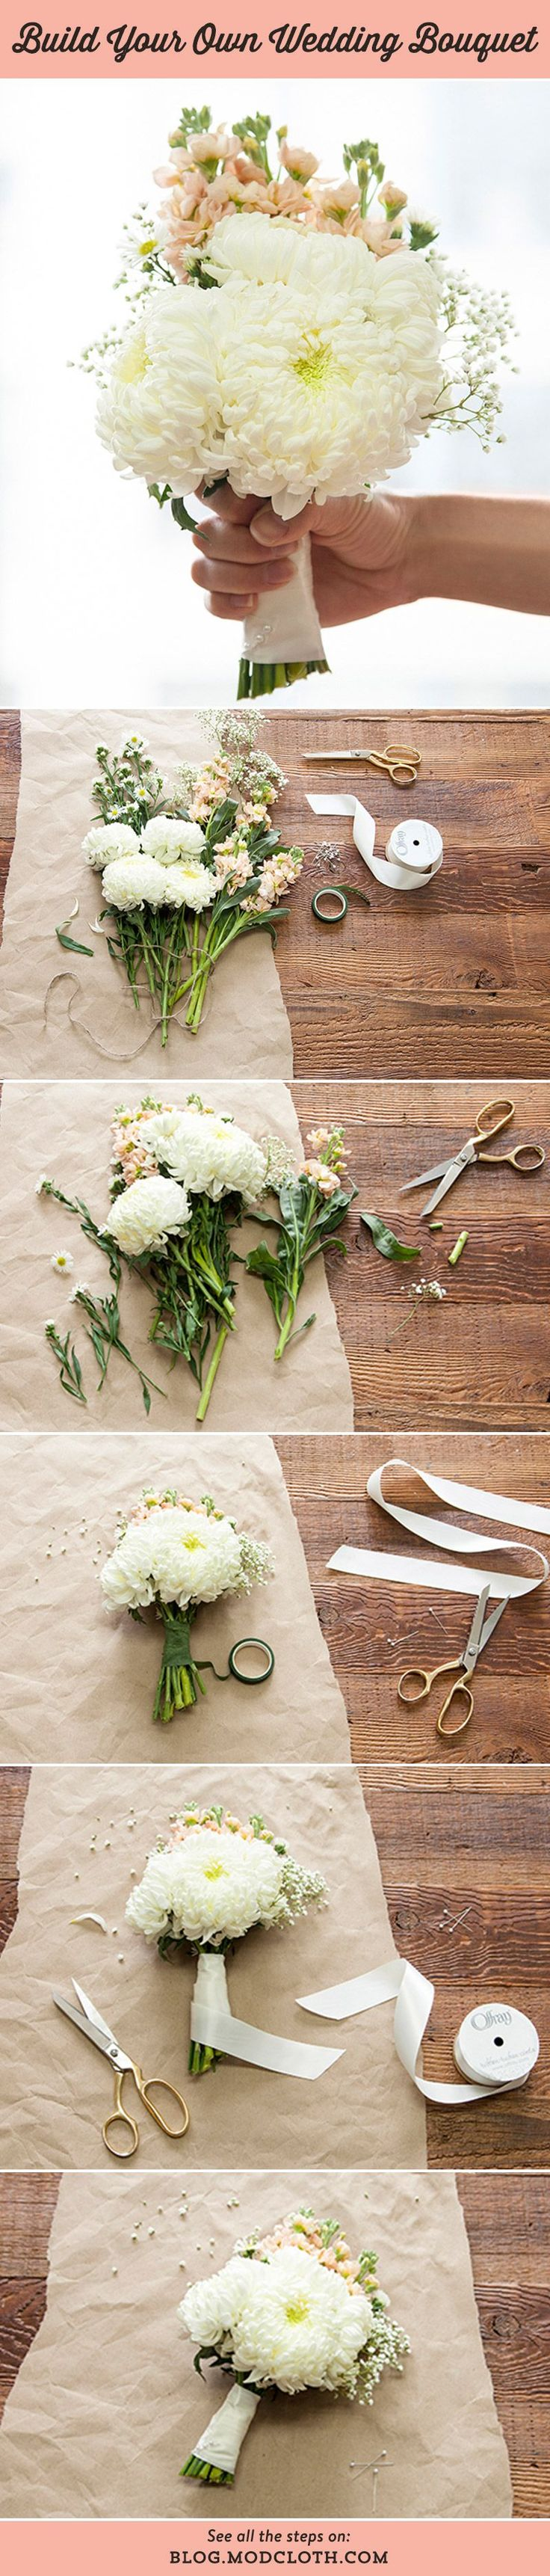 Build your own wedding bouquet with this easy #DIY! THE HOW TO,  NOT EXACTLY THE LOOK SHE WANTS